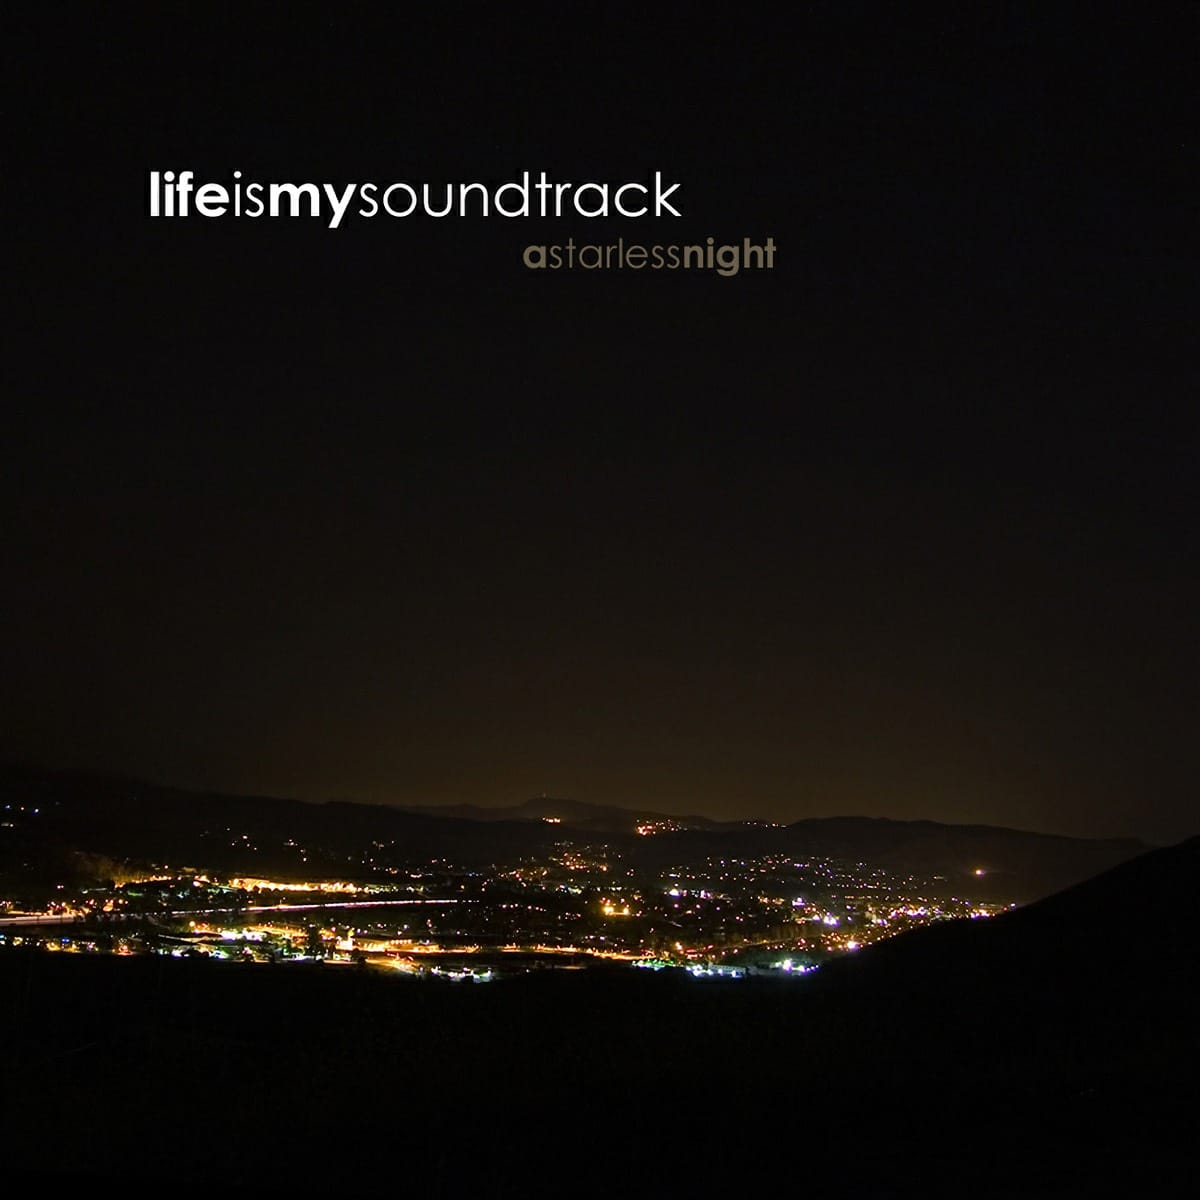 The album A Starless Night by Life Is My Soundtrack - Nearly one full hour of ambient, relaxing soundscapes that will put your night at ease